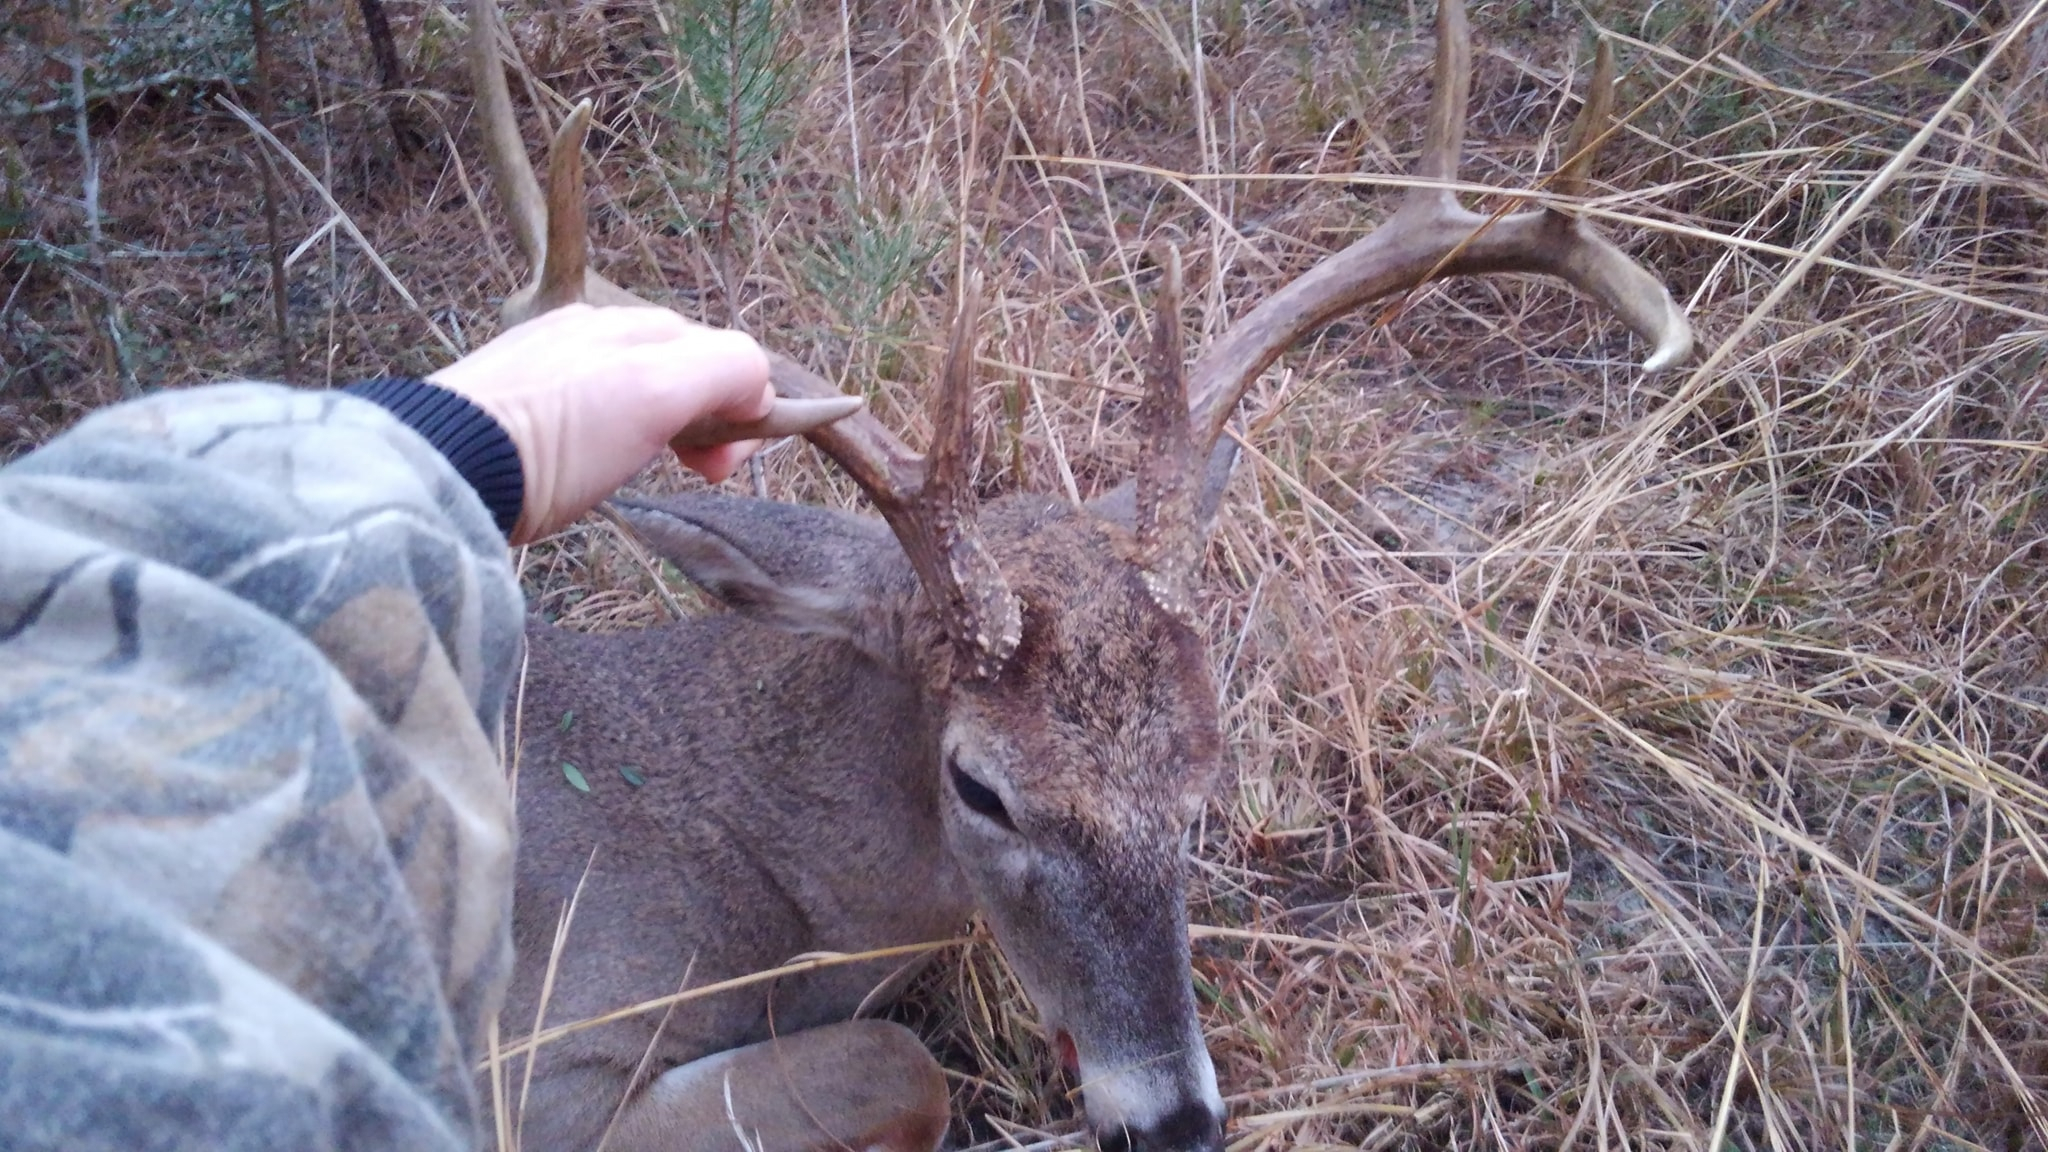 Deer Rut In Northwest Florida | Panhandle Outdoors within 2020 Deer Rut